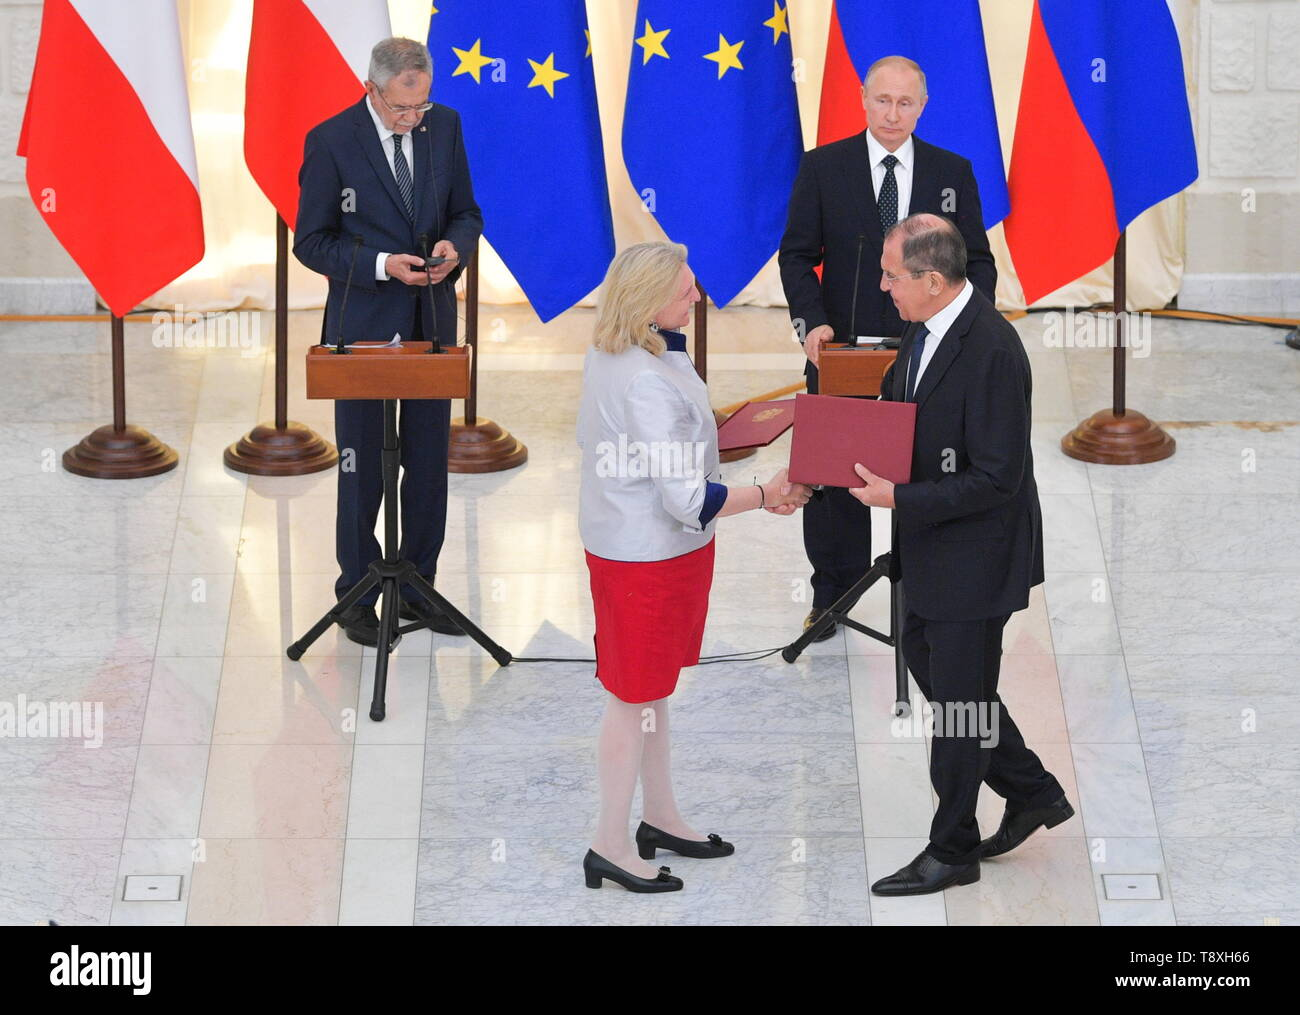 Sochi, Russia. 15th May, 2019. SOCHI, RUSSIA - MAY 15, 2019: Austria's Foreign Minister Karin Kneissl and Russia's Foreign Minister Sergei Lavrov (L-R front) sign joint documents at a ceremony attended by Austria's President Alexander Van der Bellen and Russia's President Vladimir Putin, and following Russian-Austrian talks at the Rus health resort. Alexei Druzhinin/Russian Presidential Press and Information Office/TASS Credit: ITAR-TASS News Agency/Alamy Live News Stock Photo